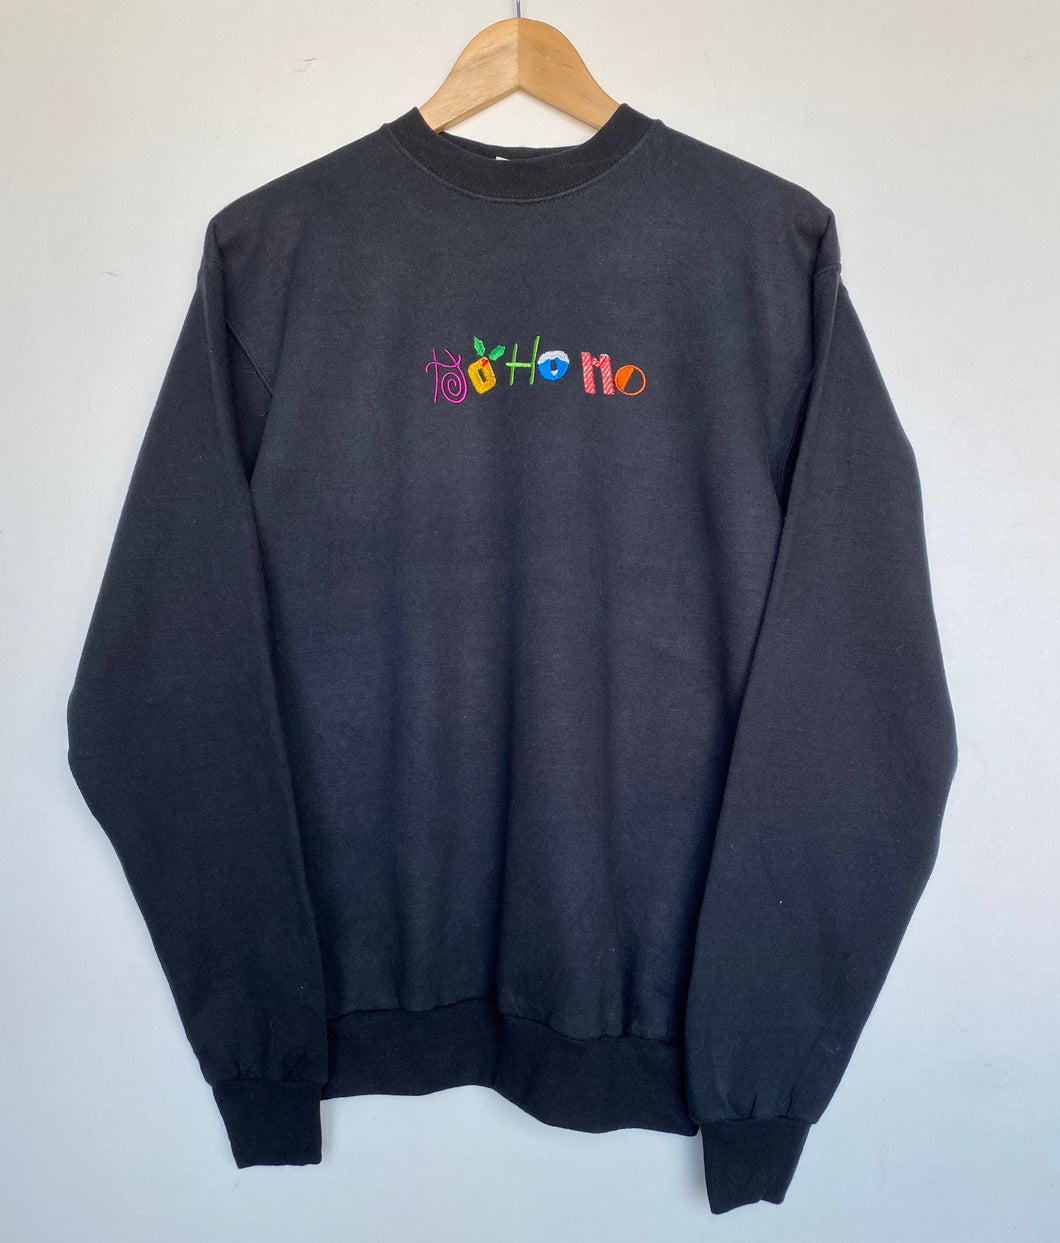 Embroidered 'Ho Ho Ho' sweatshirt (S)